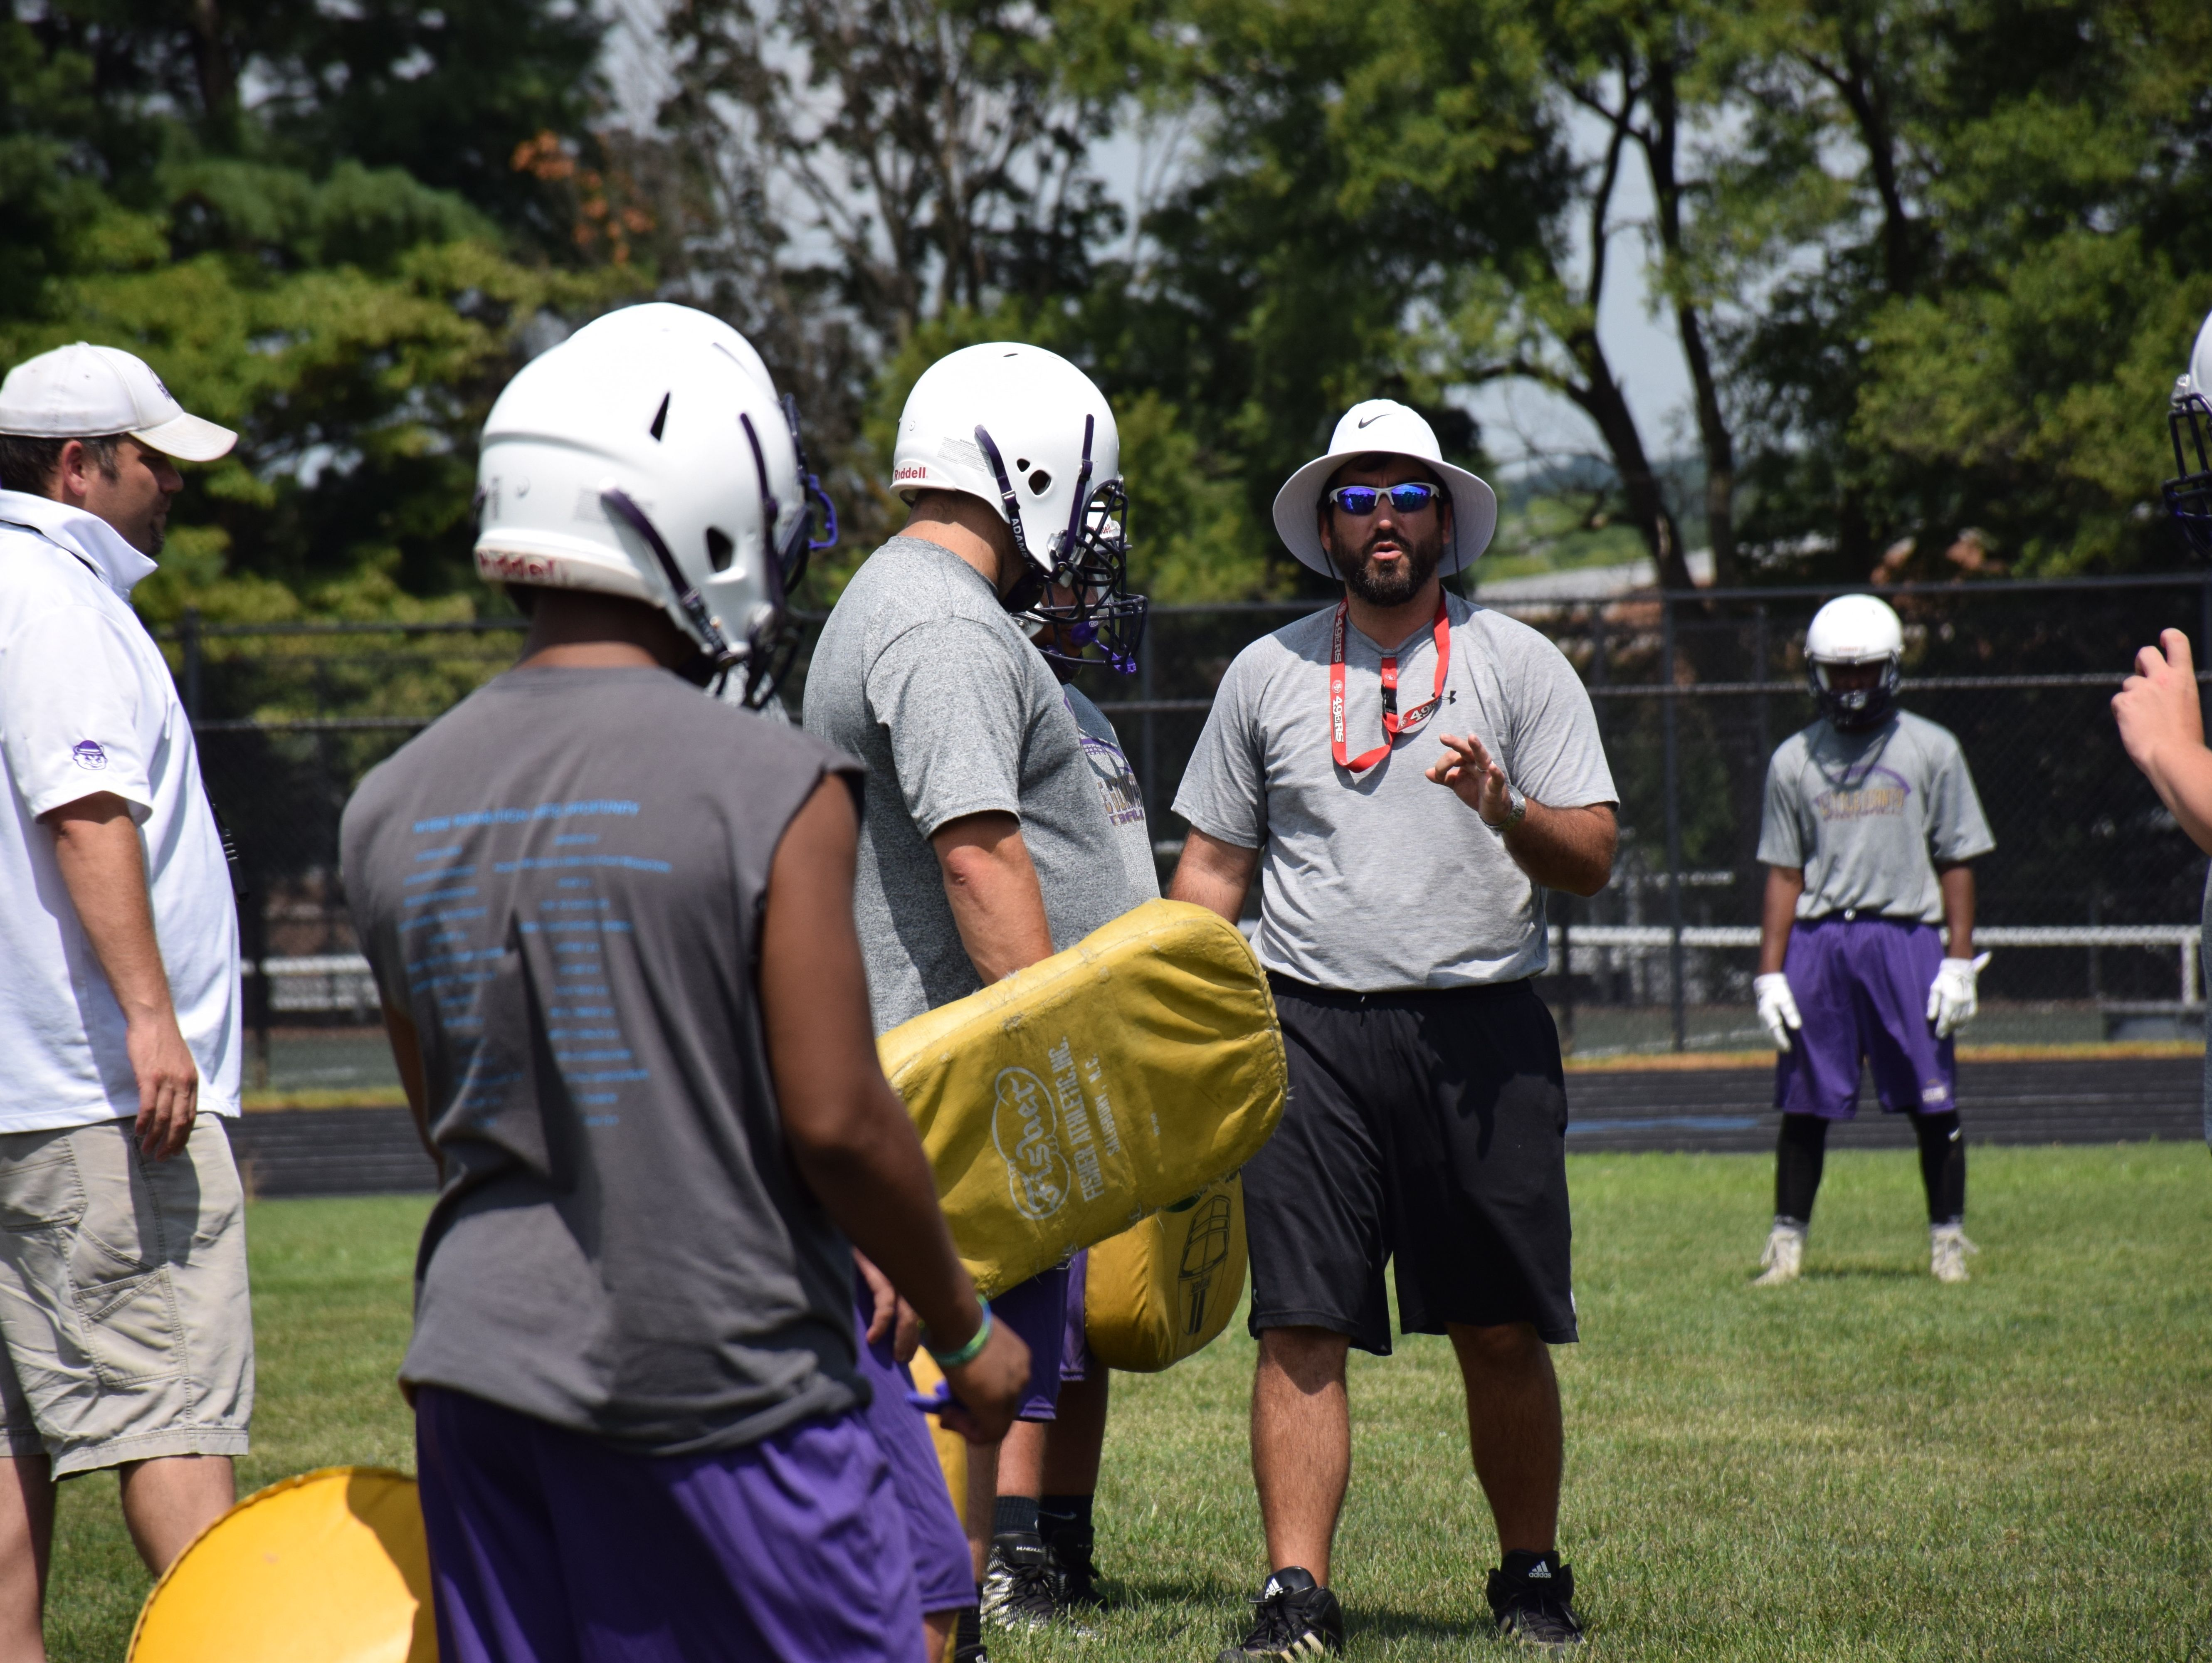 Waynesboro assistant coach Shawn Moran guides the Little Giants though an offensive drill during the first day of practice on Thursday, July 28, 2016, at Waynesboro High School